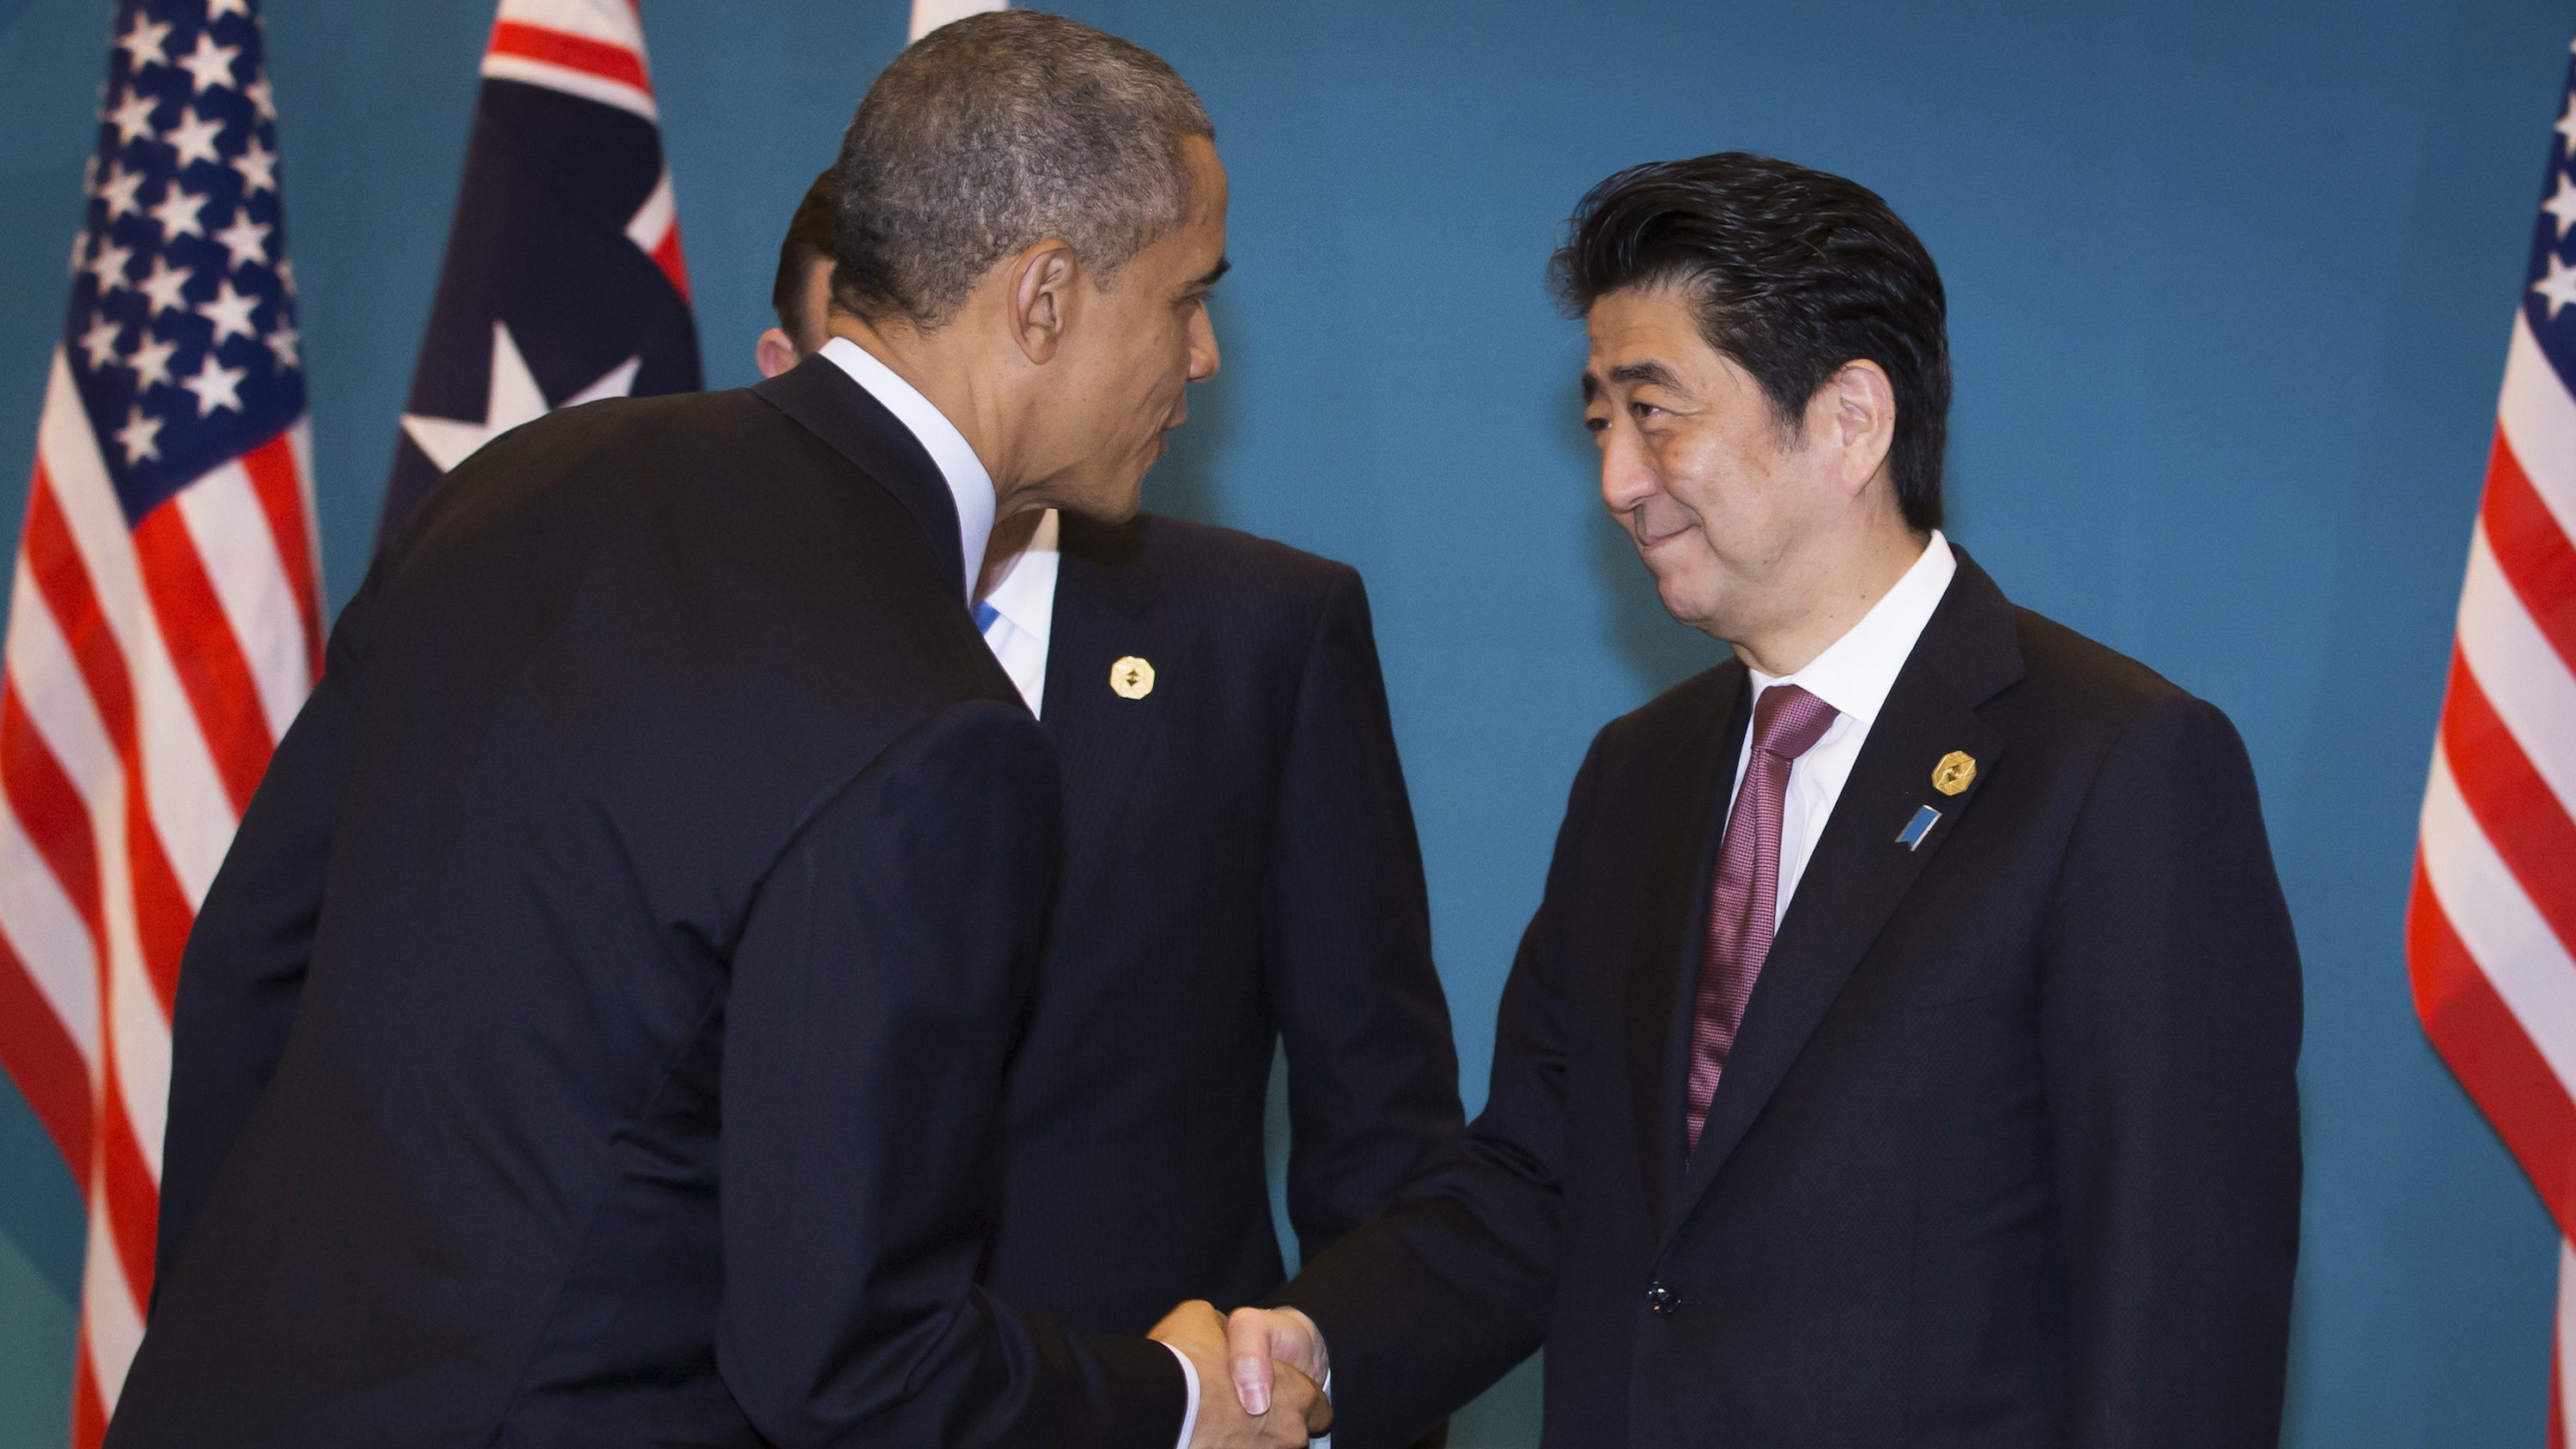 US president Barack Obama shakes hands with Japanese prime minister Shinzo Abe at the G20 conference in Brisbane, Nov. 2014.